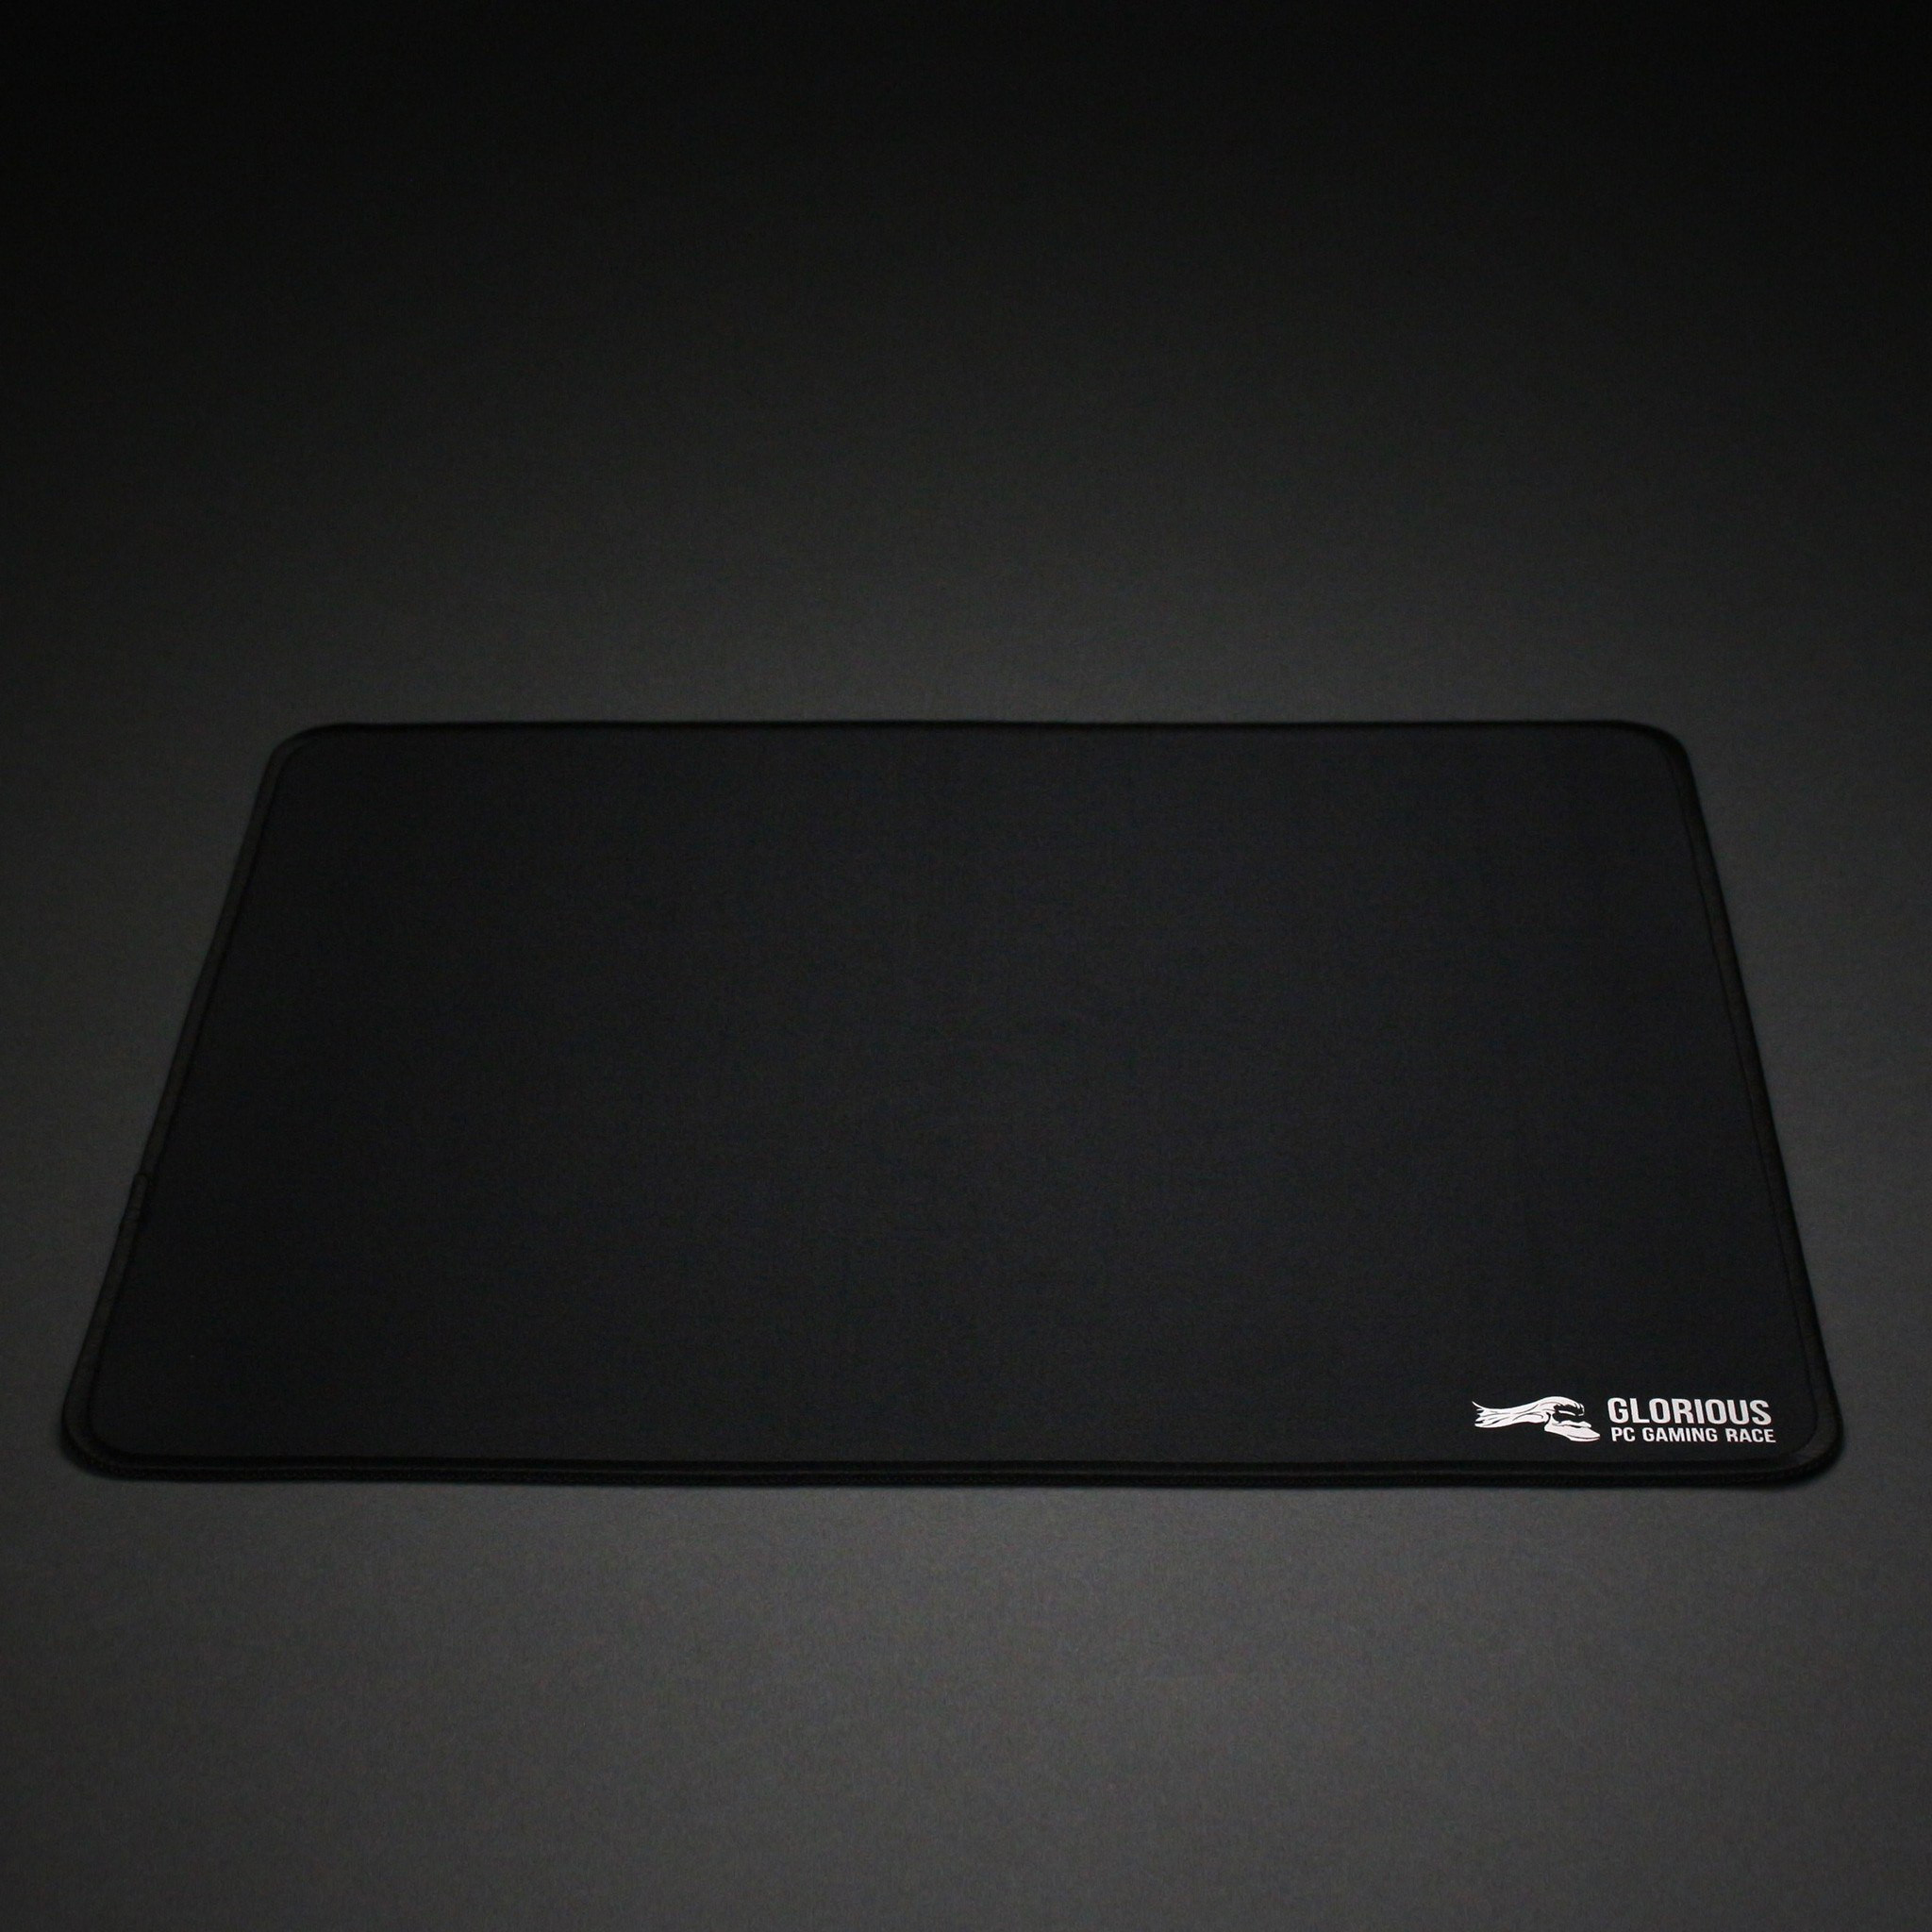 Tapis de souris gamer GLORIOUS PC GAMING RACE - GLORIOUS LARGE - Gamers-Insutry.com Photo Produit 1